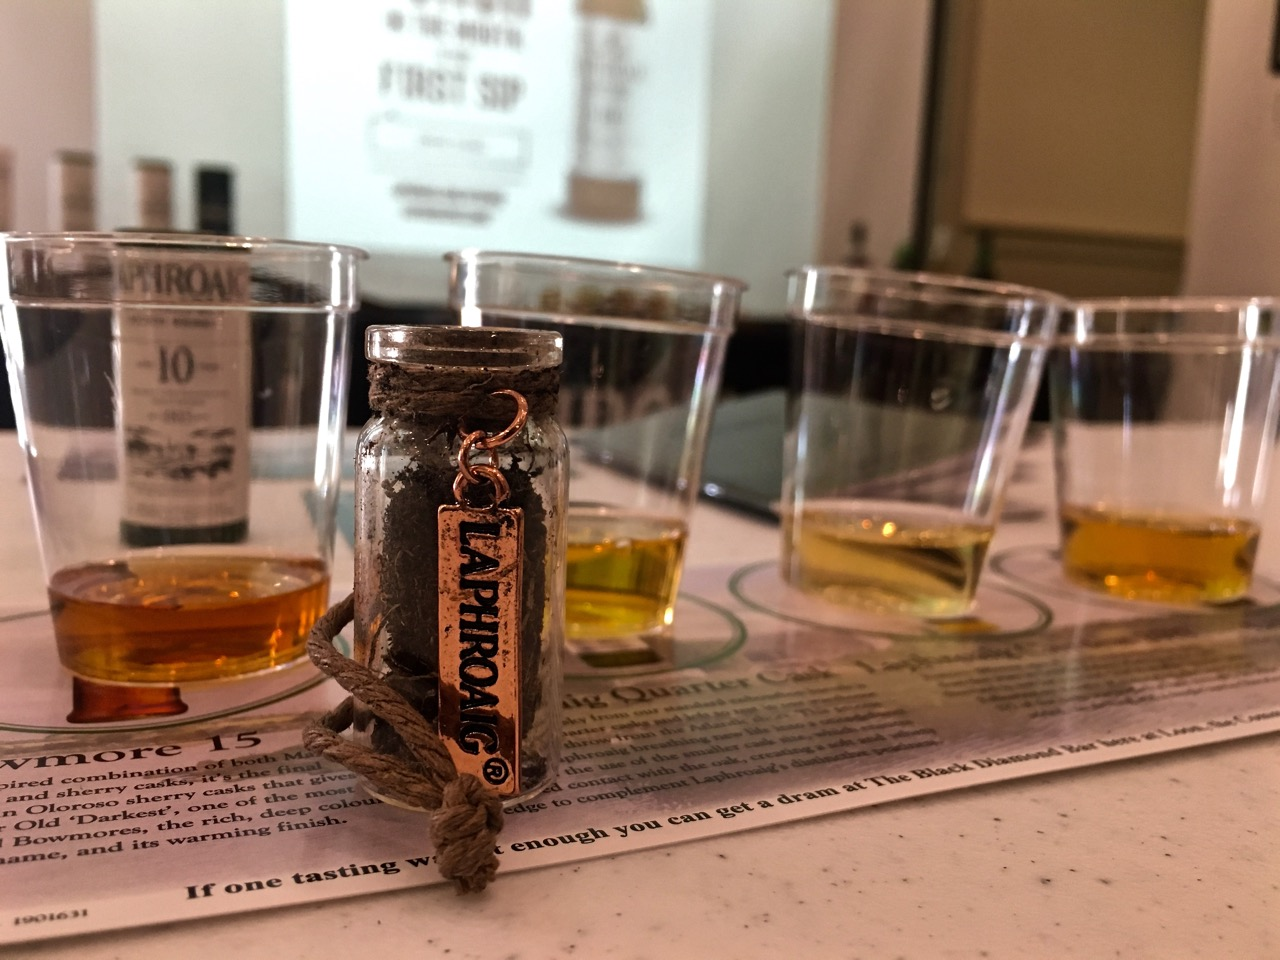 The tasting at this year's NH Highland Games was kicked off with the Bowmore 15 followed by Laphoraig's Quarter Cask, 2017 Cairdeas and Lore bottlings. A very tasty lineup!